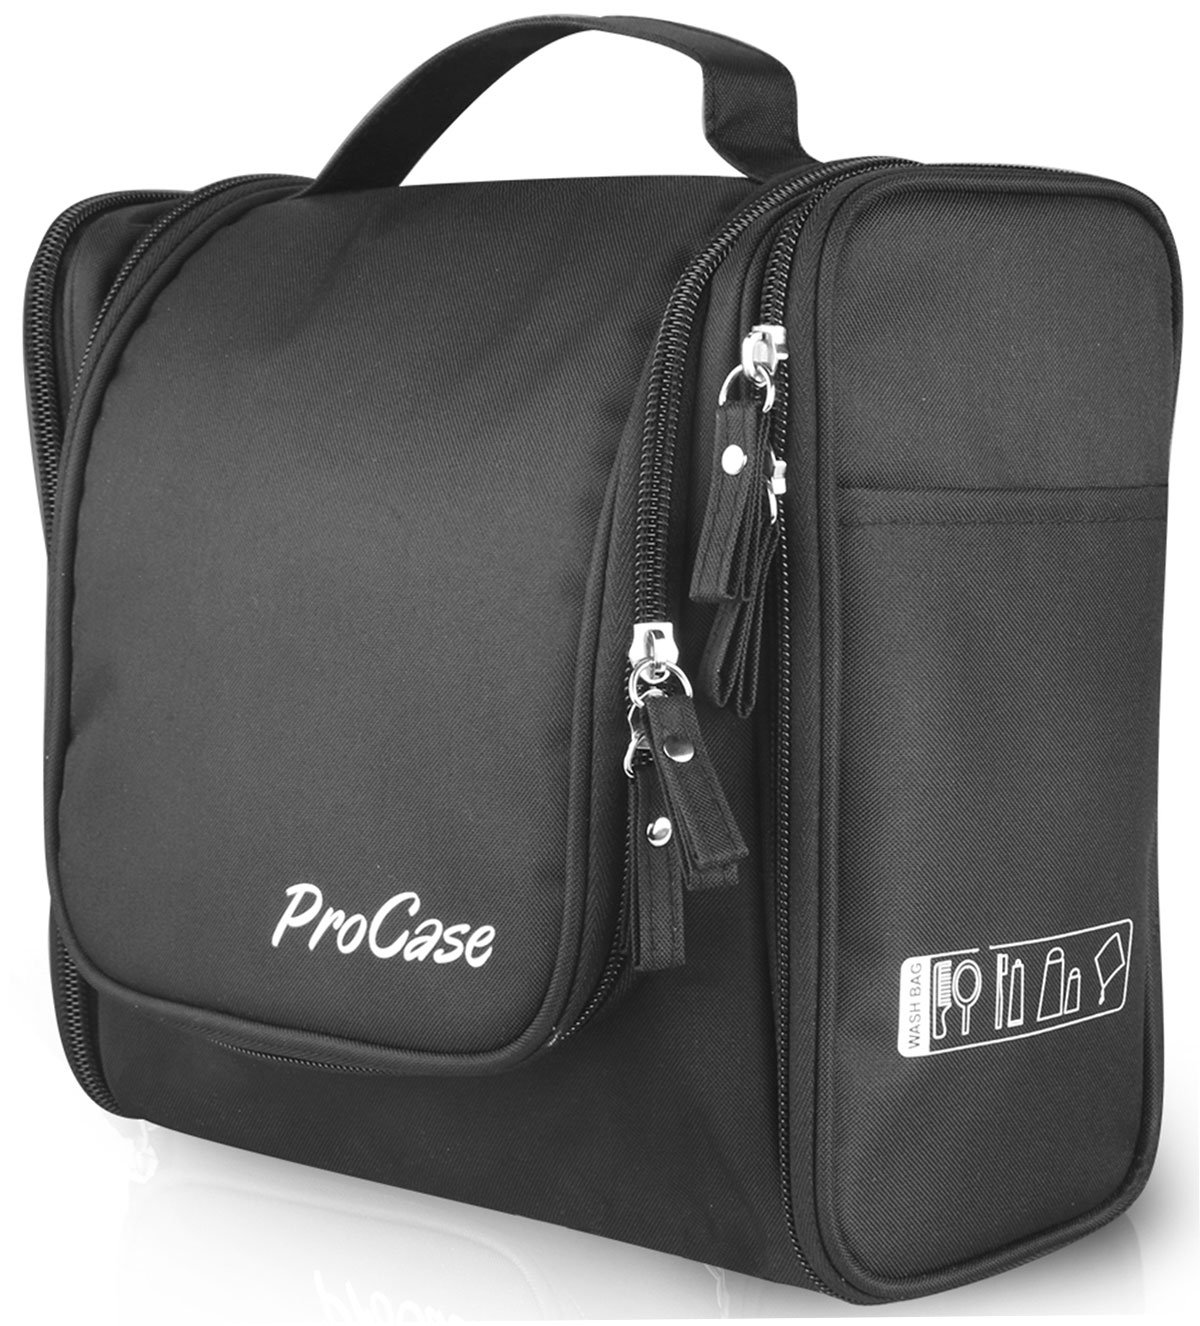 ProCase Toiletry Bag with Hanging Hook, Organizer for Travel Accessories, Makeup, Shampoo, Cosmetic, Personal Items, Bathroom Storage with Hanging, Large, Black by ProCase